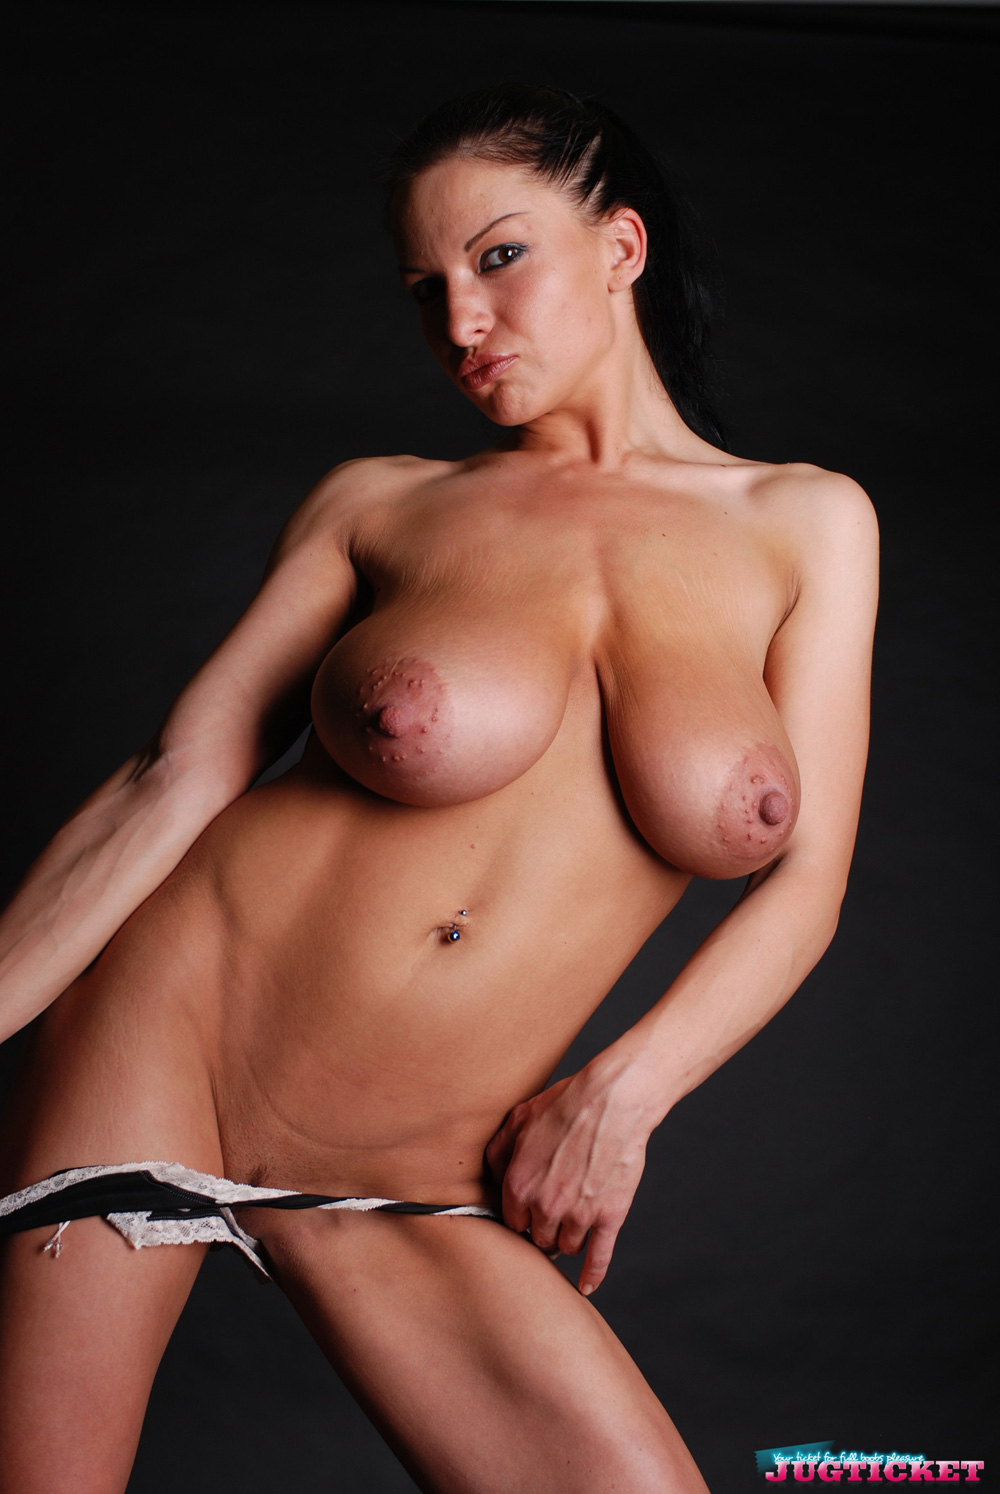 strip tease topless holzdildos